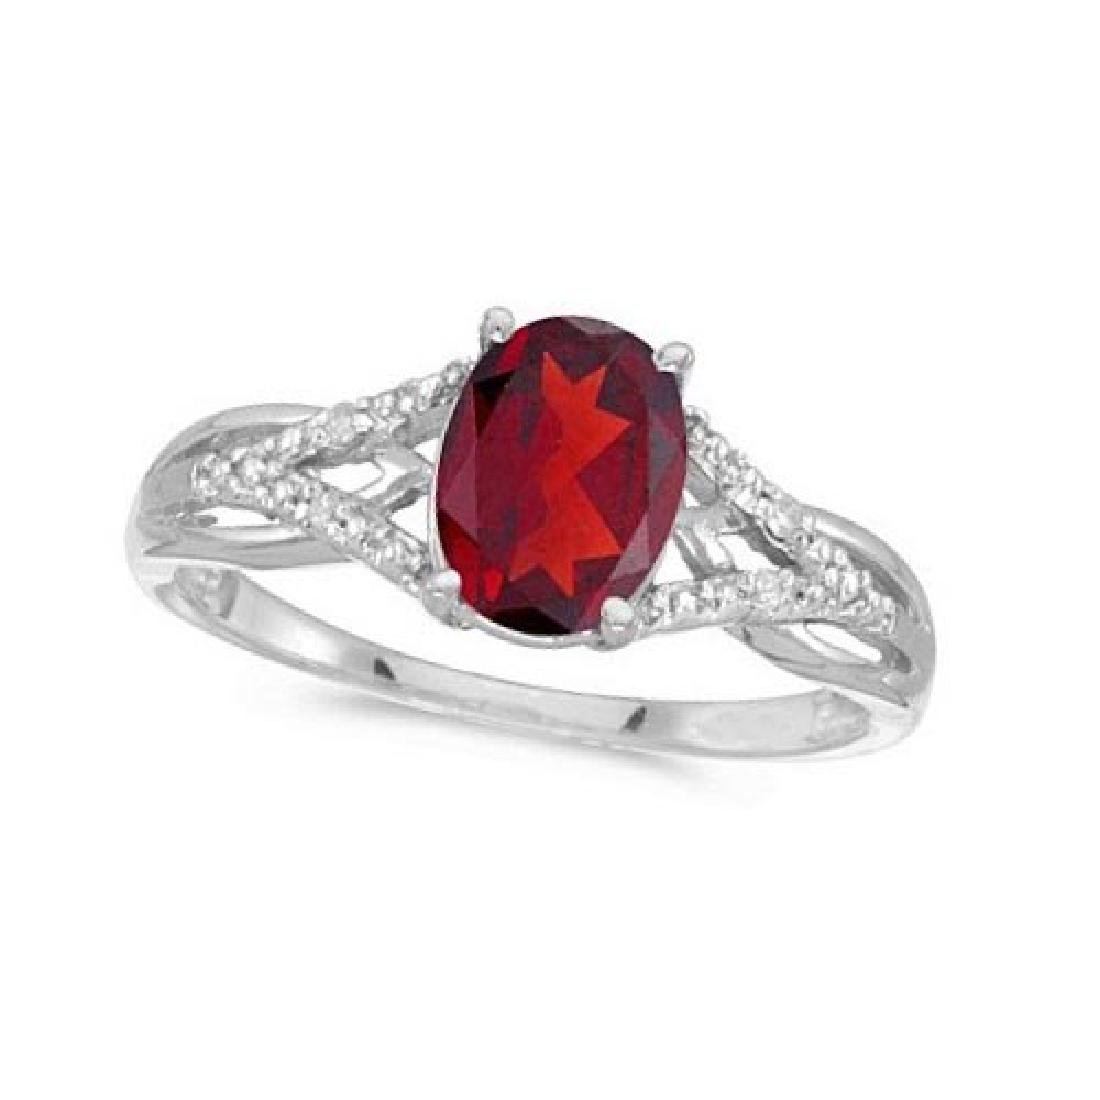 Oval Ruby and Diamond Cocktail Ring in 14K White Gold (